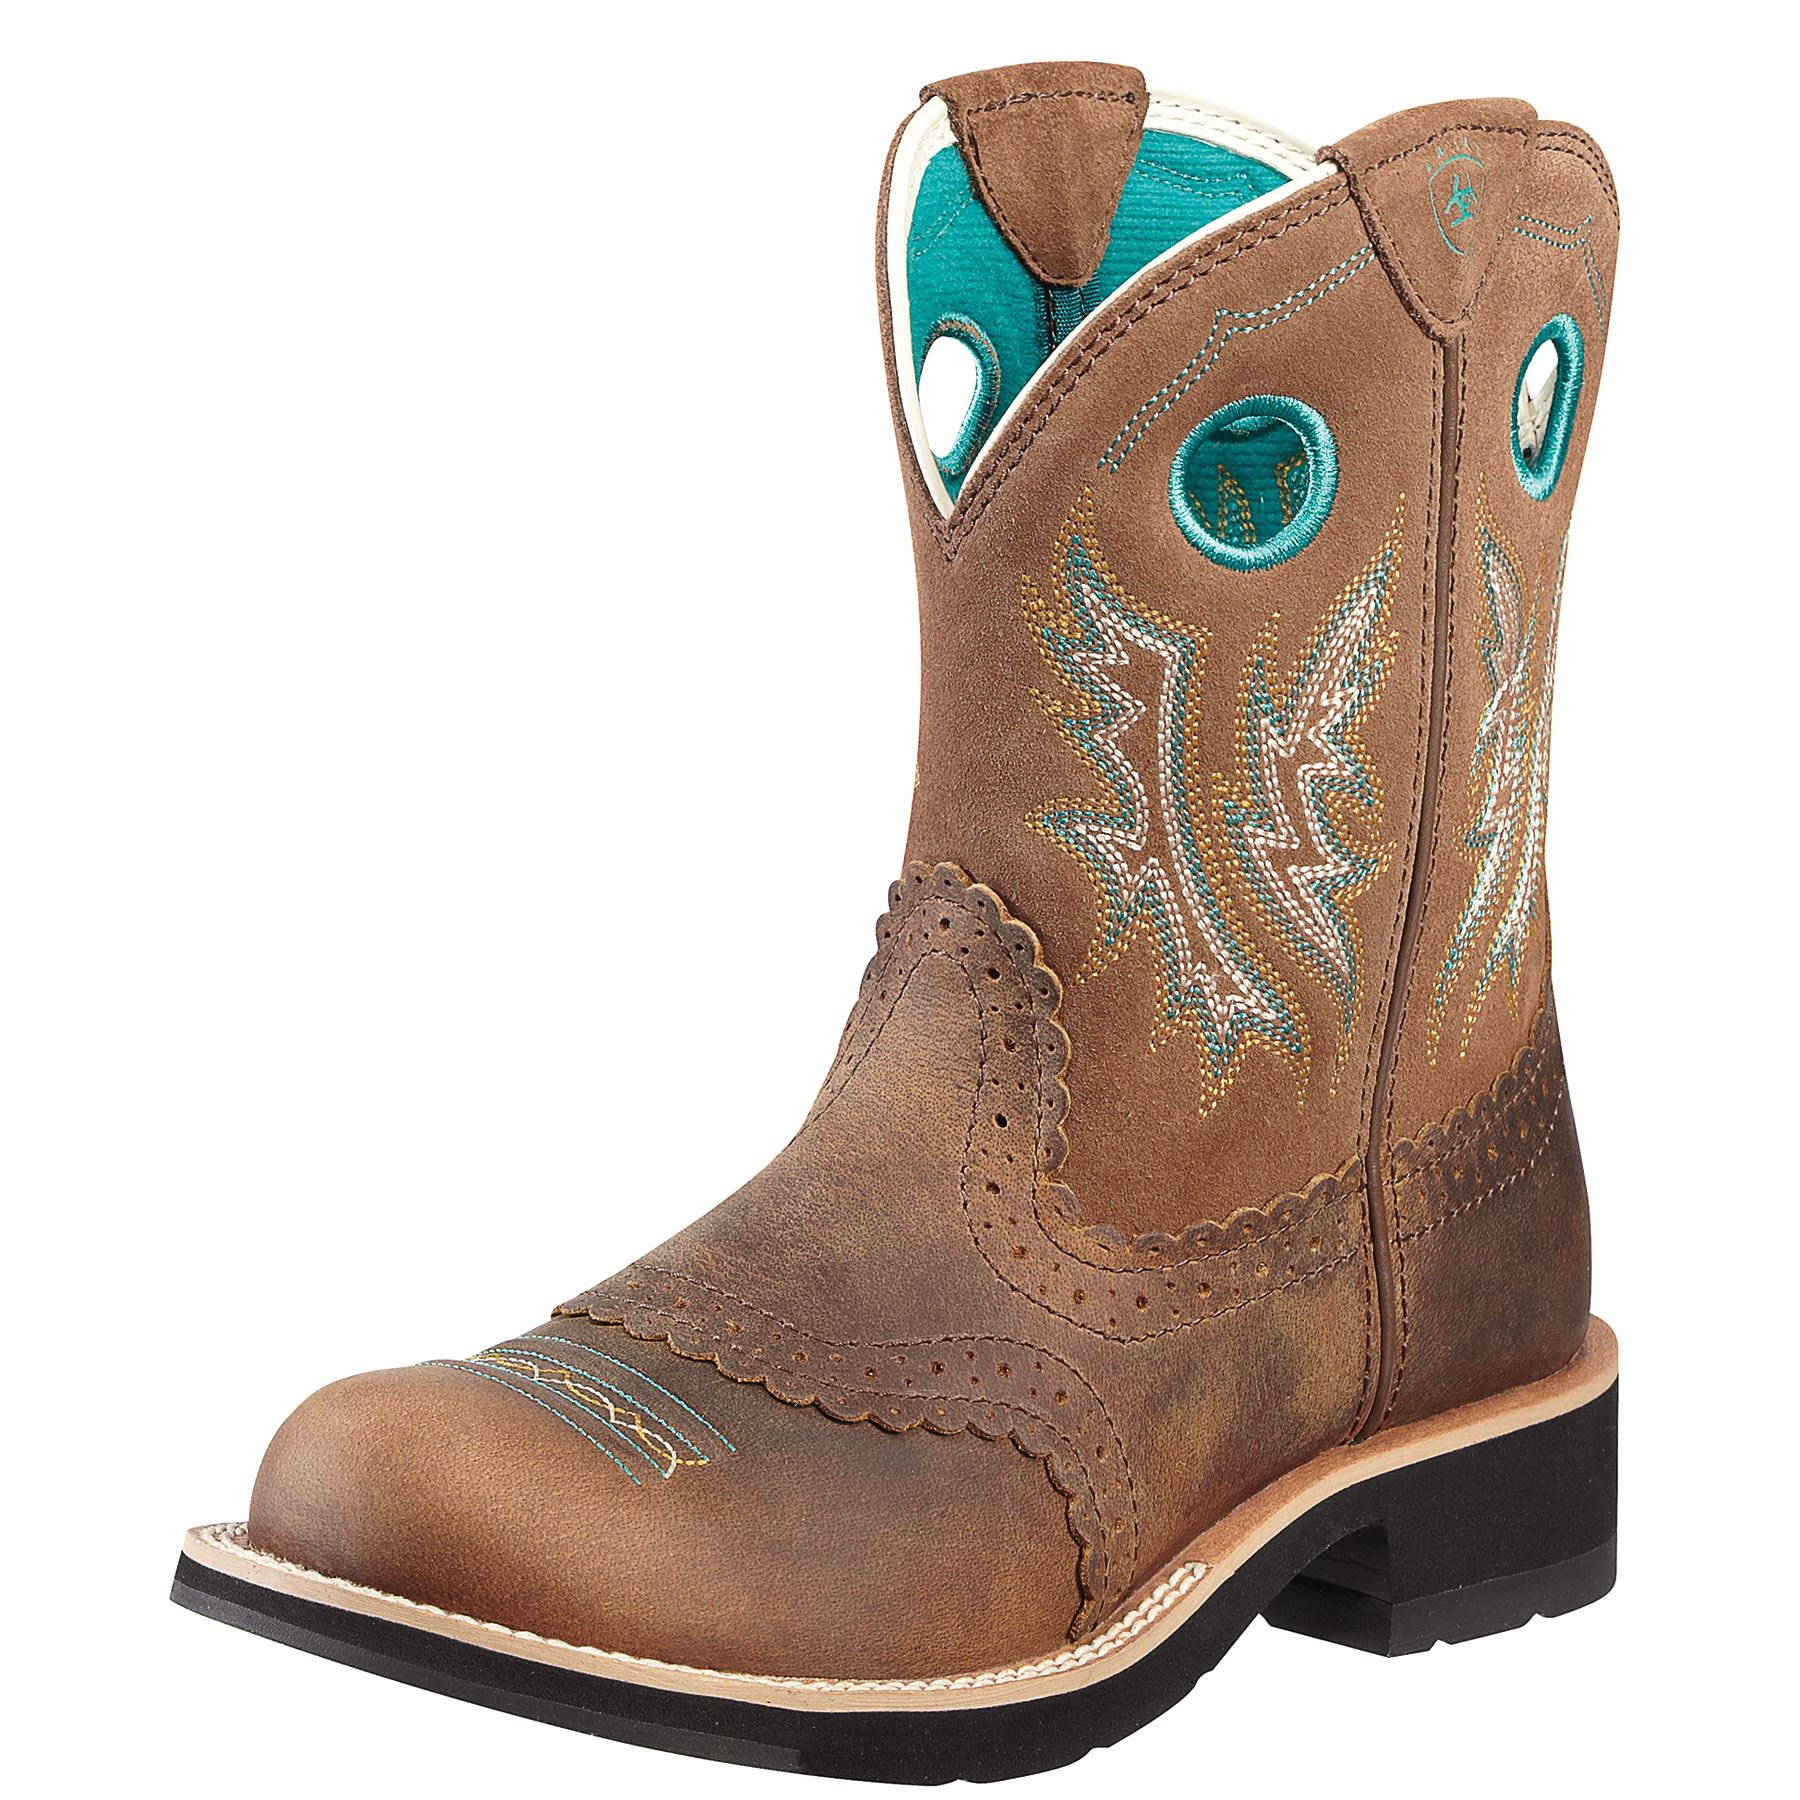 Ariat Ladies Fatbaby Cowgirl Boot Powder Brown Tan In